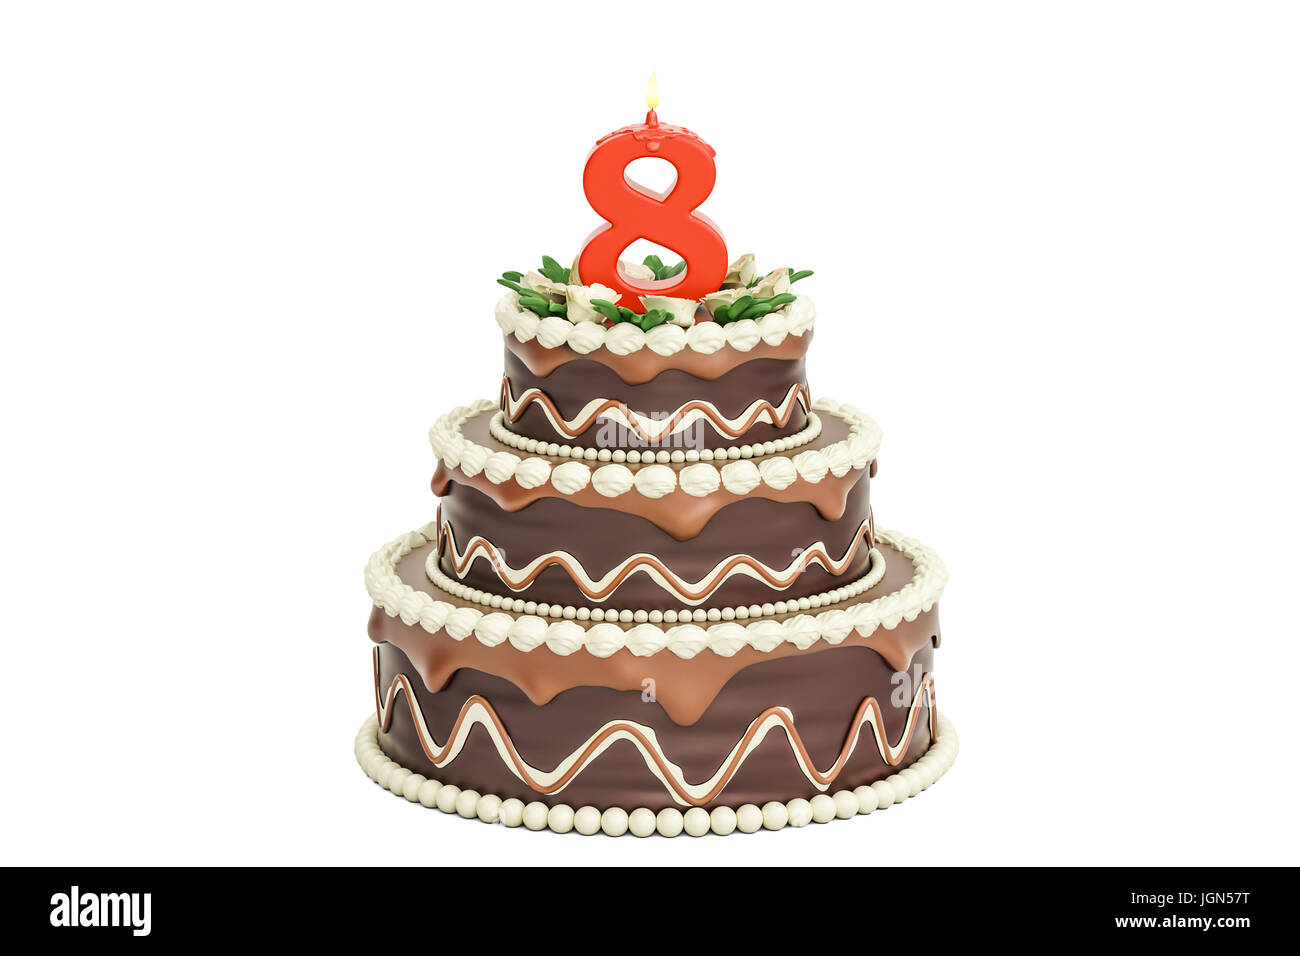 Miraculous Chocolate Cake 8Th Birthday Stock Photos Chocolate Cake 8Th Funny Birthday Cards Online Inifodamsfinfo